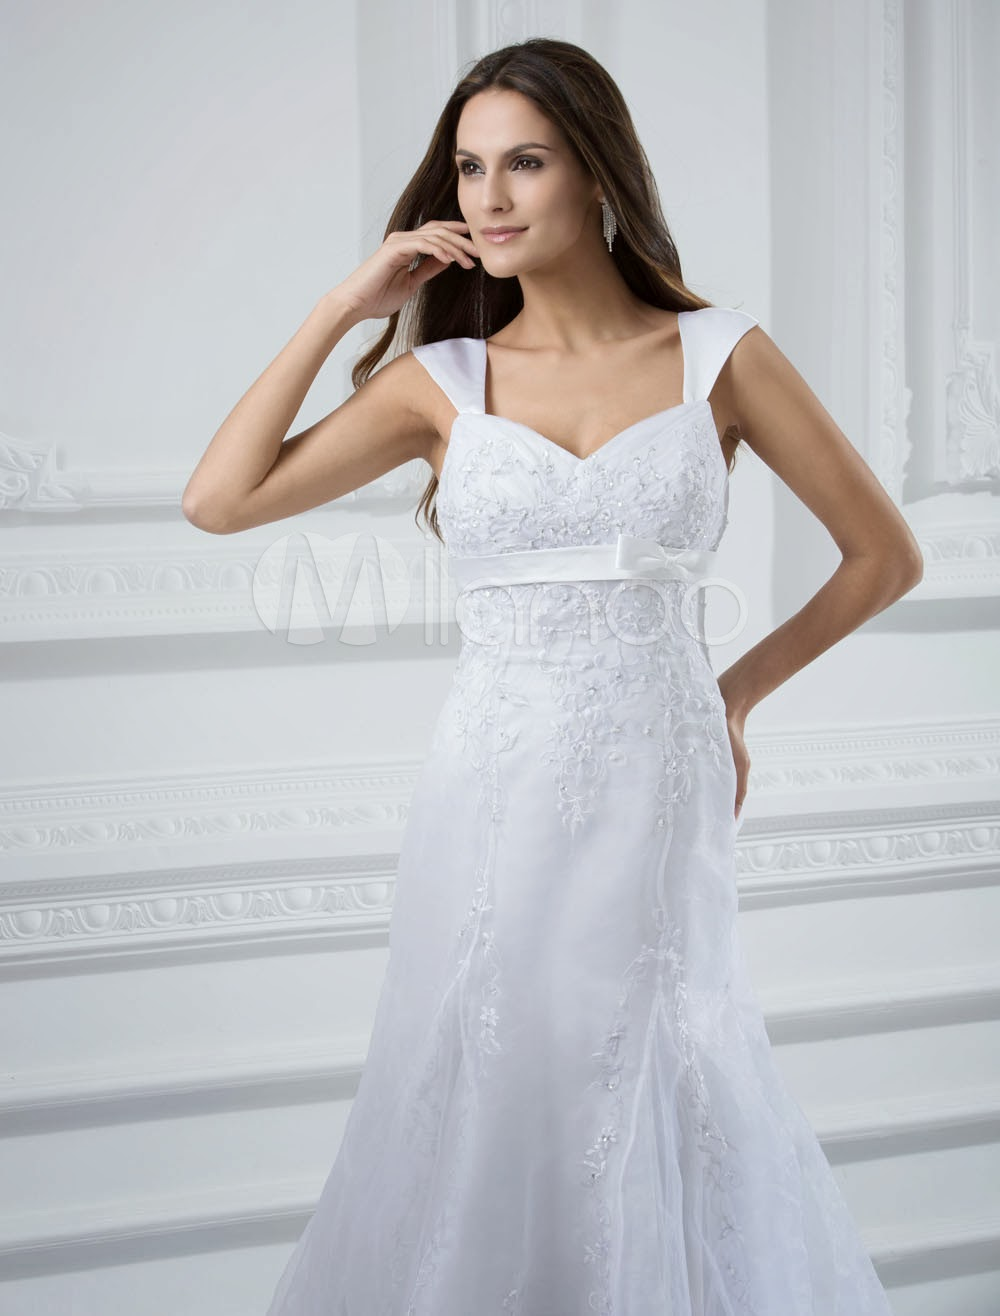 China Wholesale Dresses - Chic White Satin Sweetheart Neck Beading A-line Wedding Dress For Bride